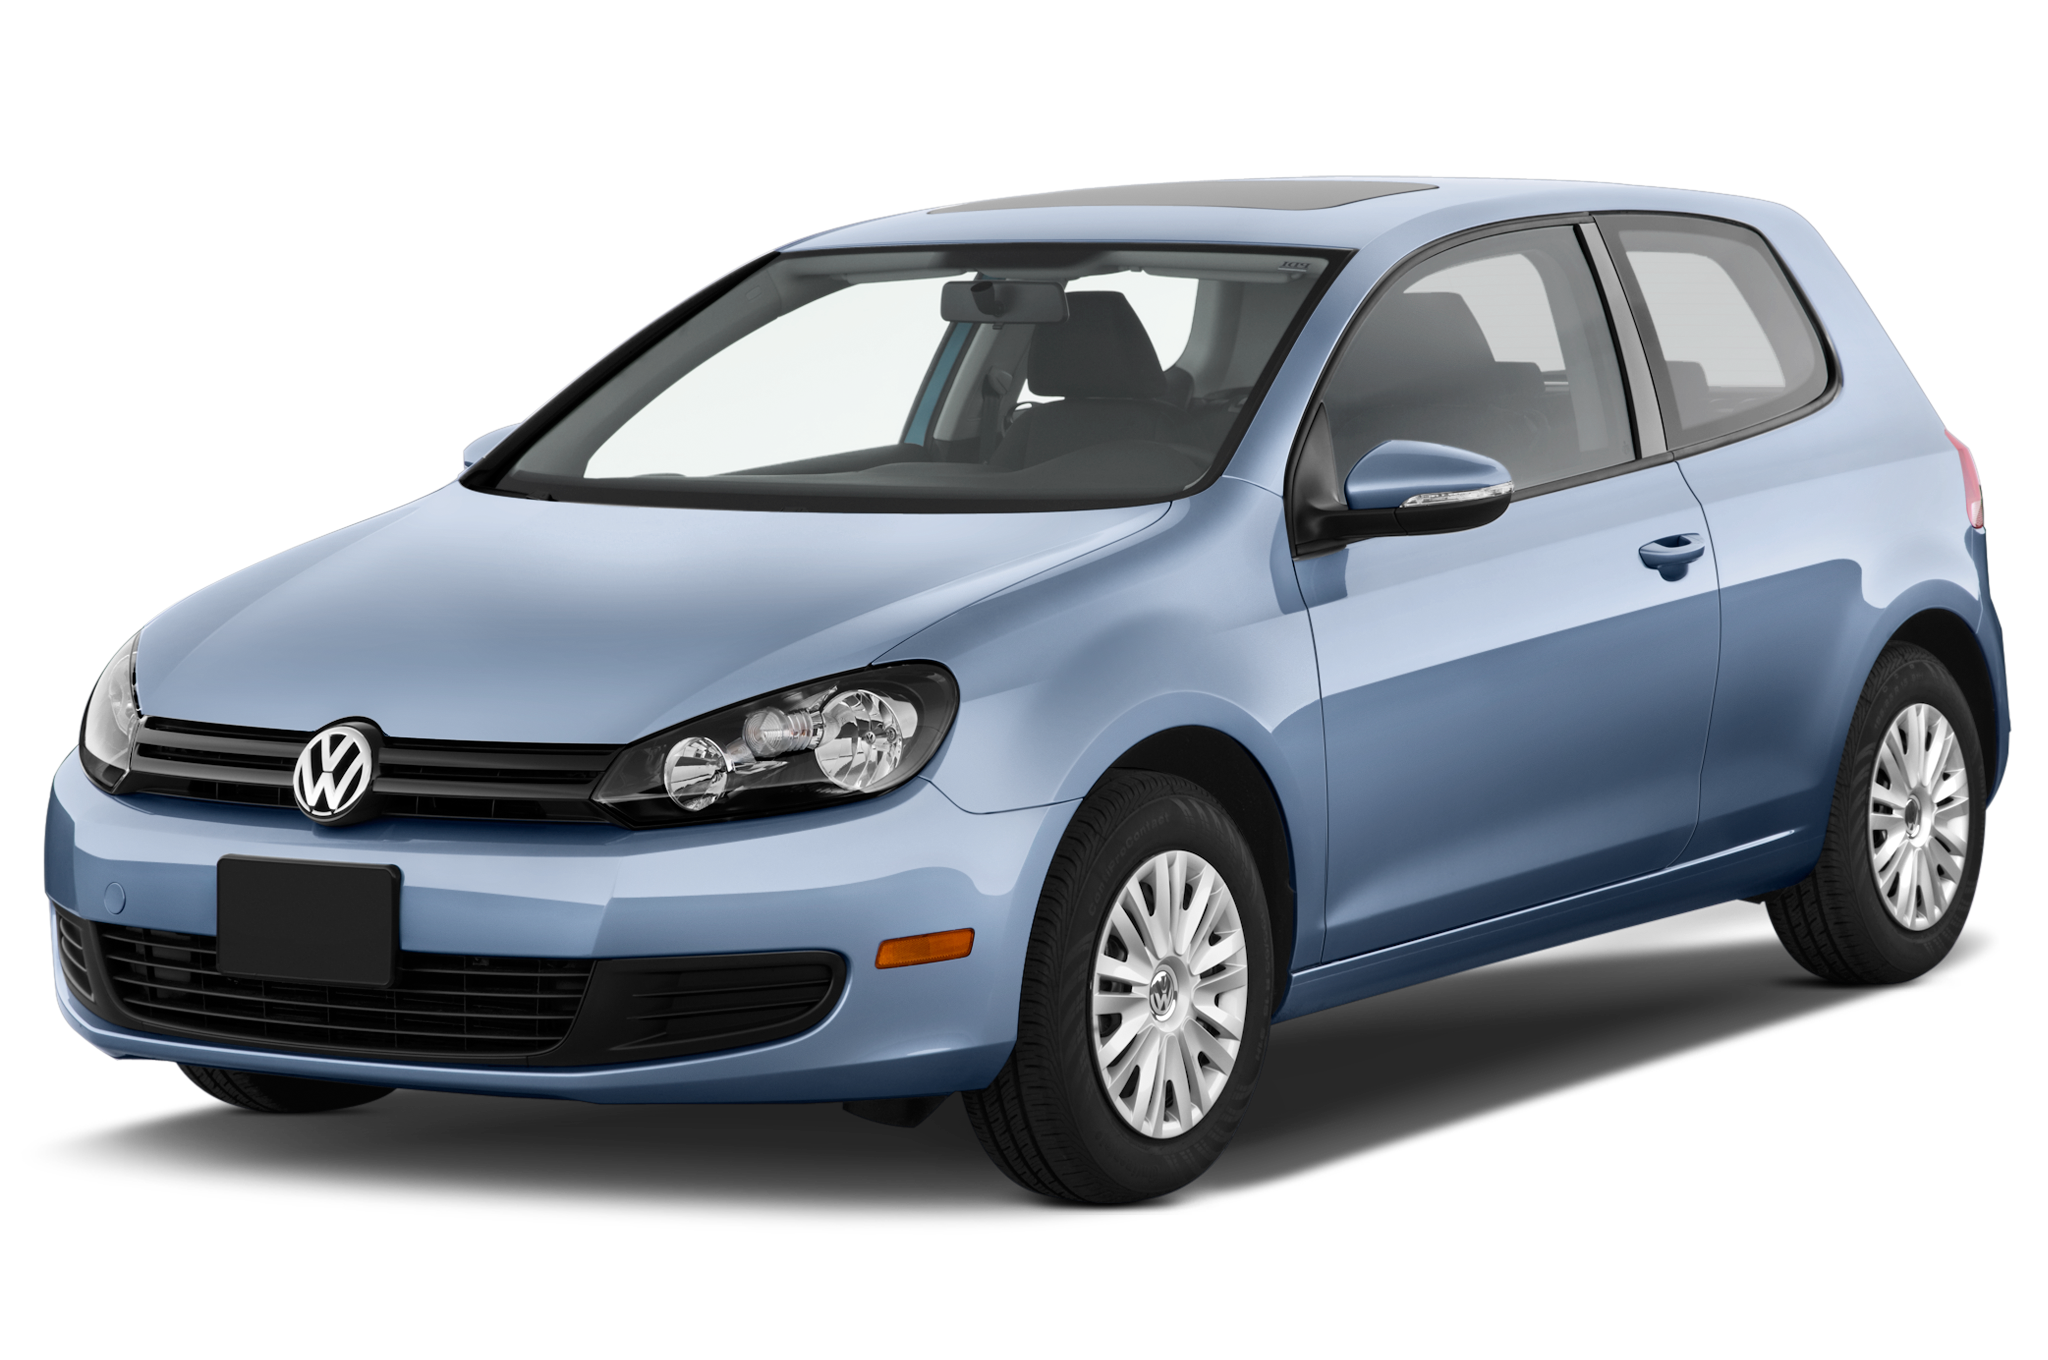 Feature Flick Chinese Designed Volkswagen Hover Car Takes Flight In 2010 Jetta Diesel Fuse Box Diagram 56 250